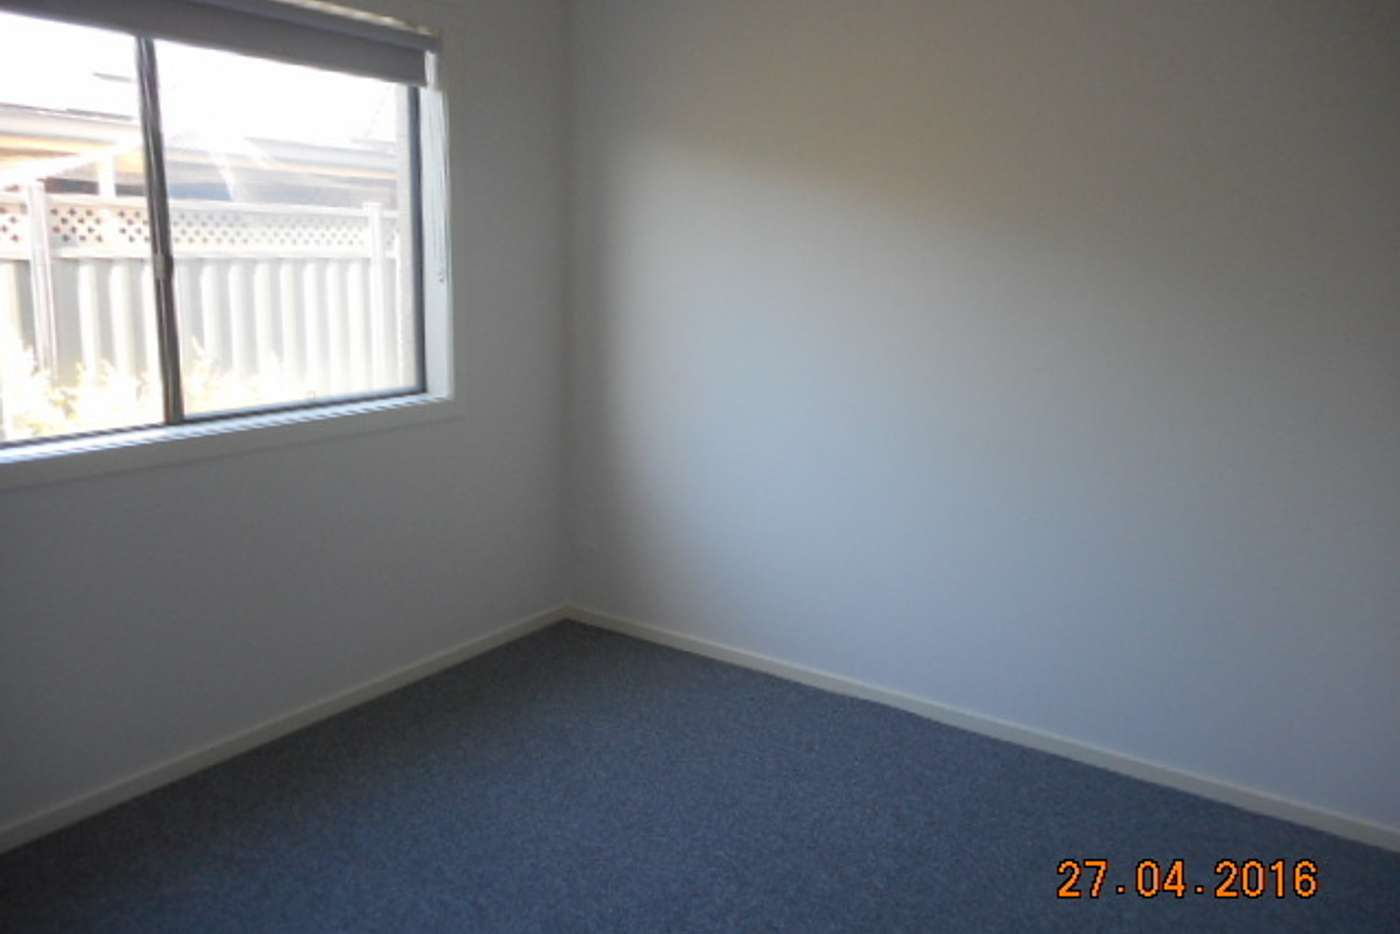 Seventh view of Homely house listing, 1234 Ison Road, Wyndham Vale VIC 3024